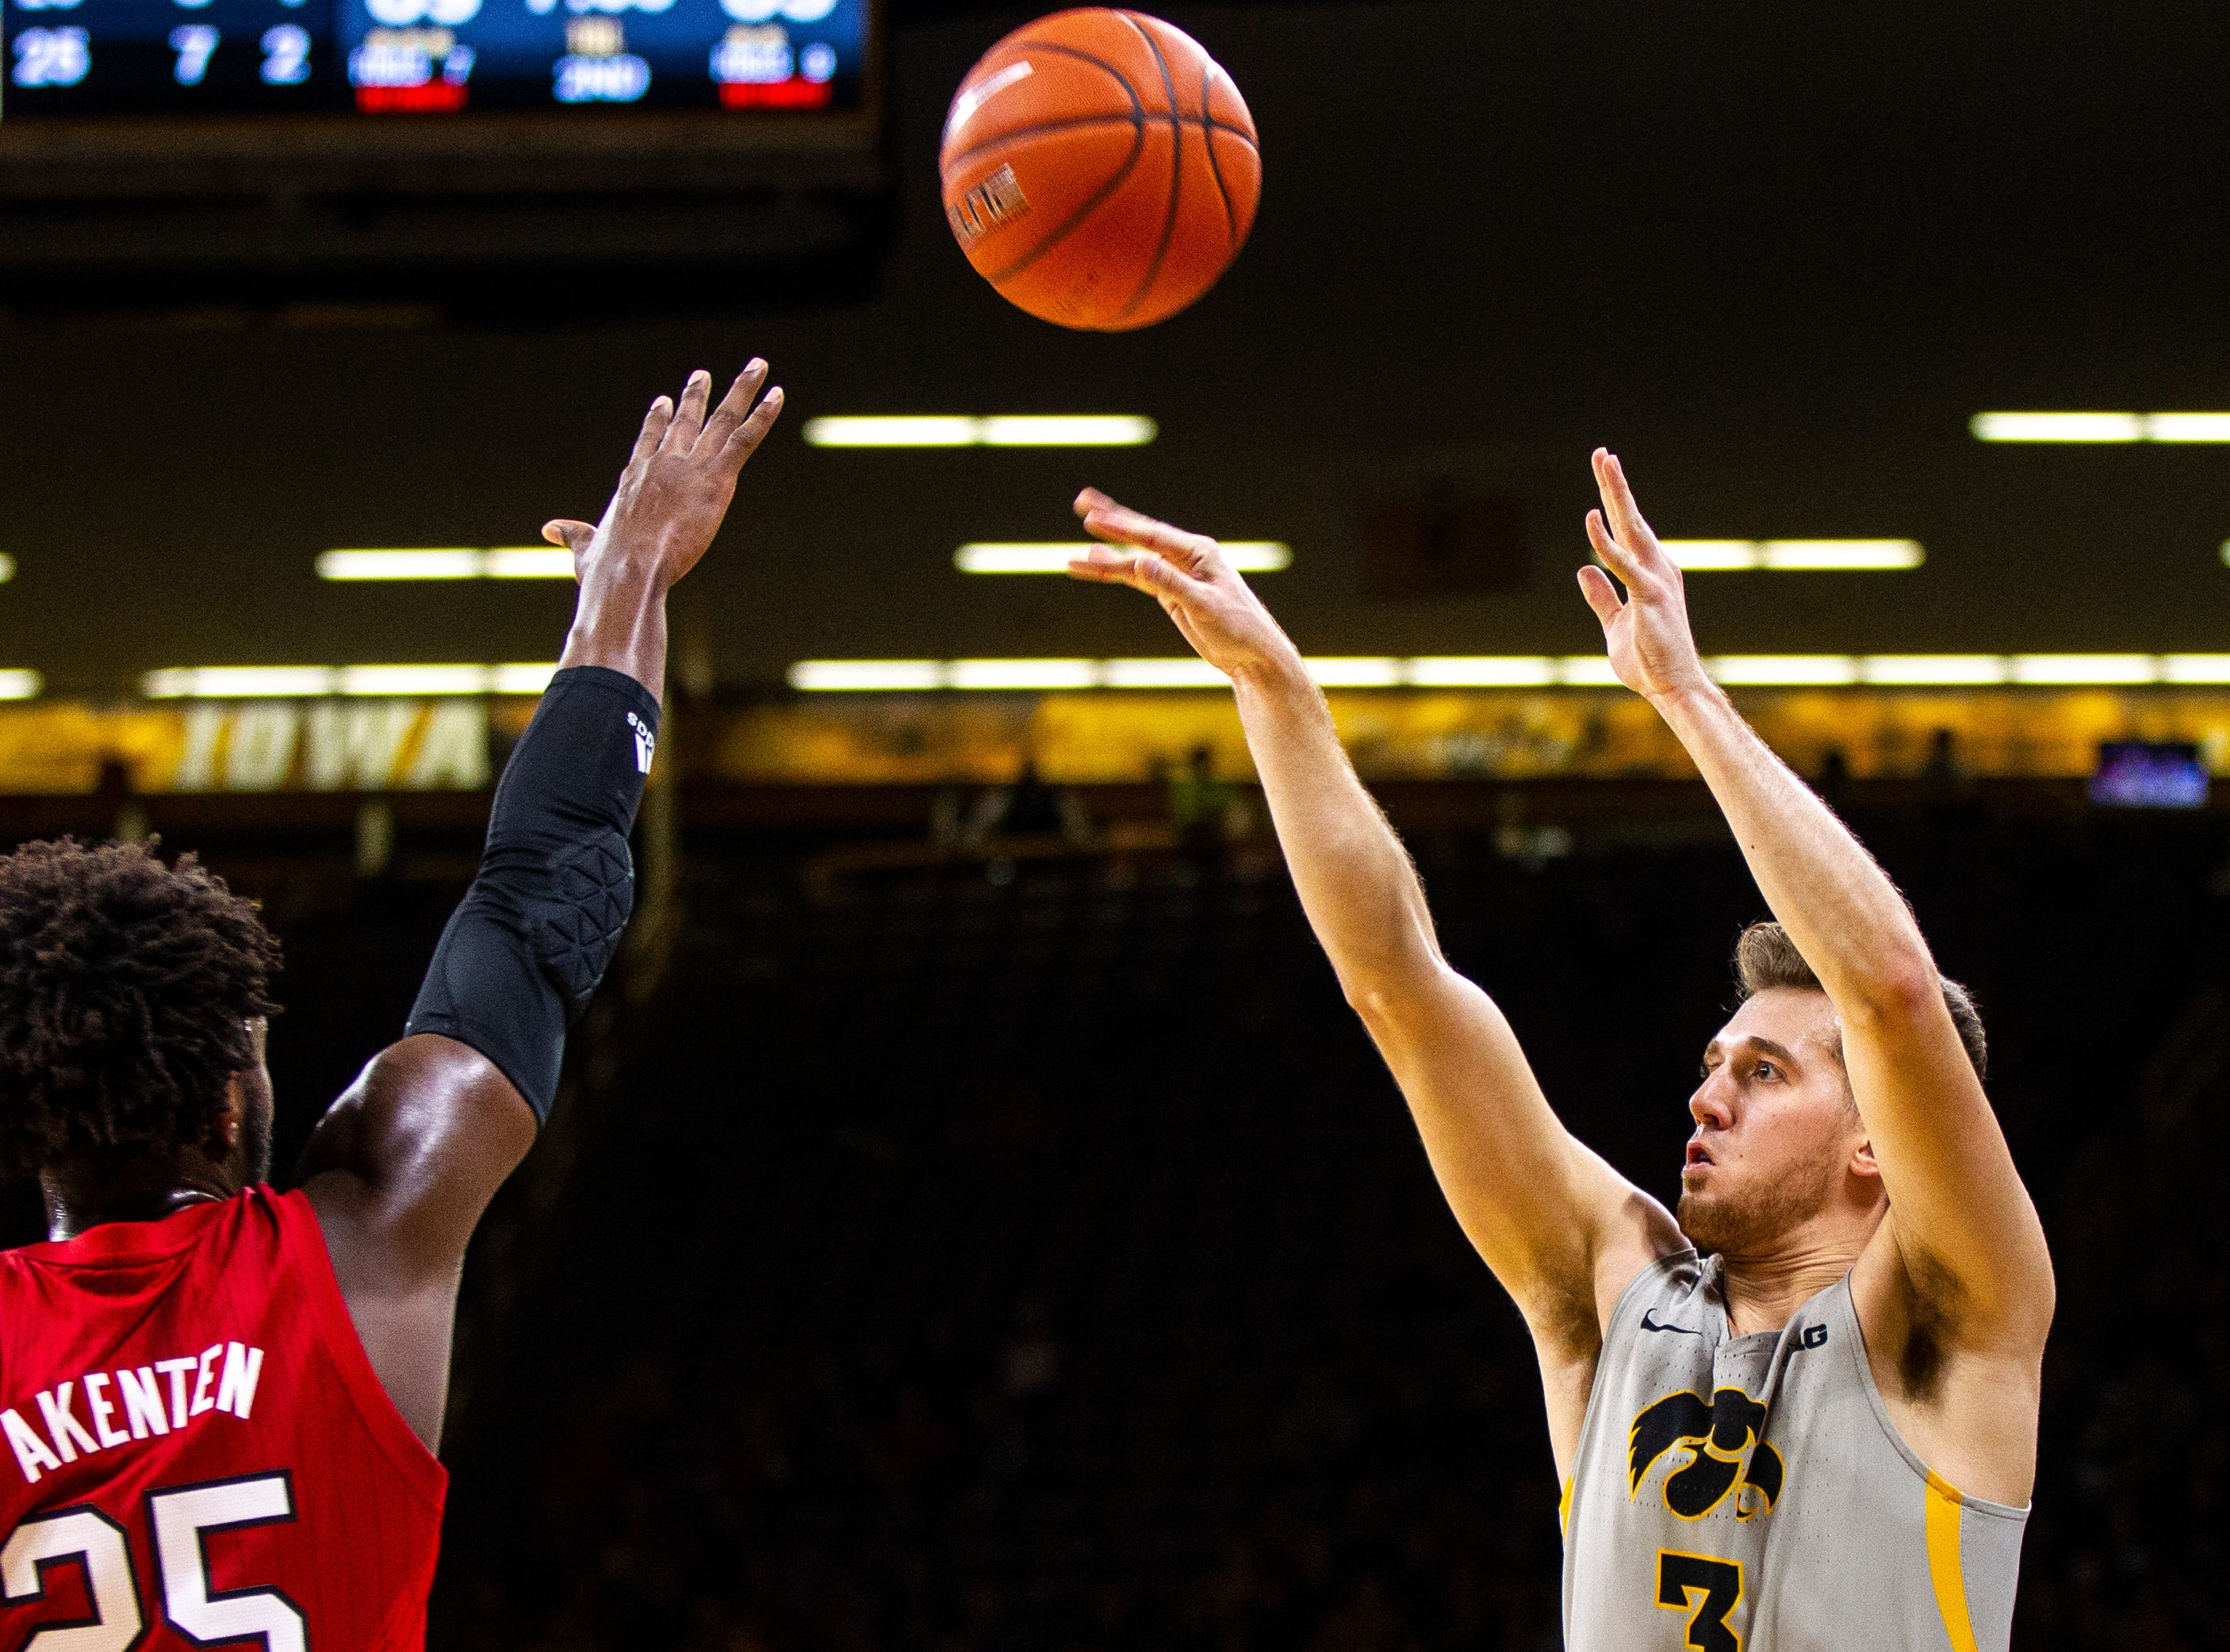 Iowa guard Jordan Bohannon (3) shoots a 3-point basket during a NCAA Big Ten Conference men's basketball game on Sunday, Jan. 6, 2019, at the Carver-Hawkeye Arena in Iowa City, Iowa.